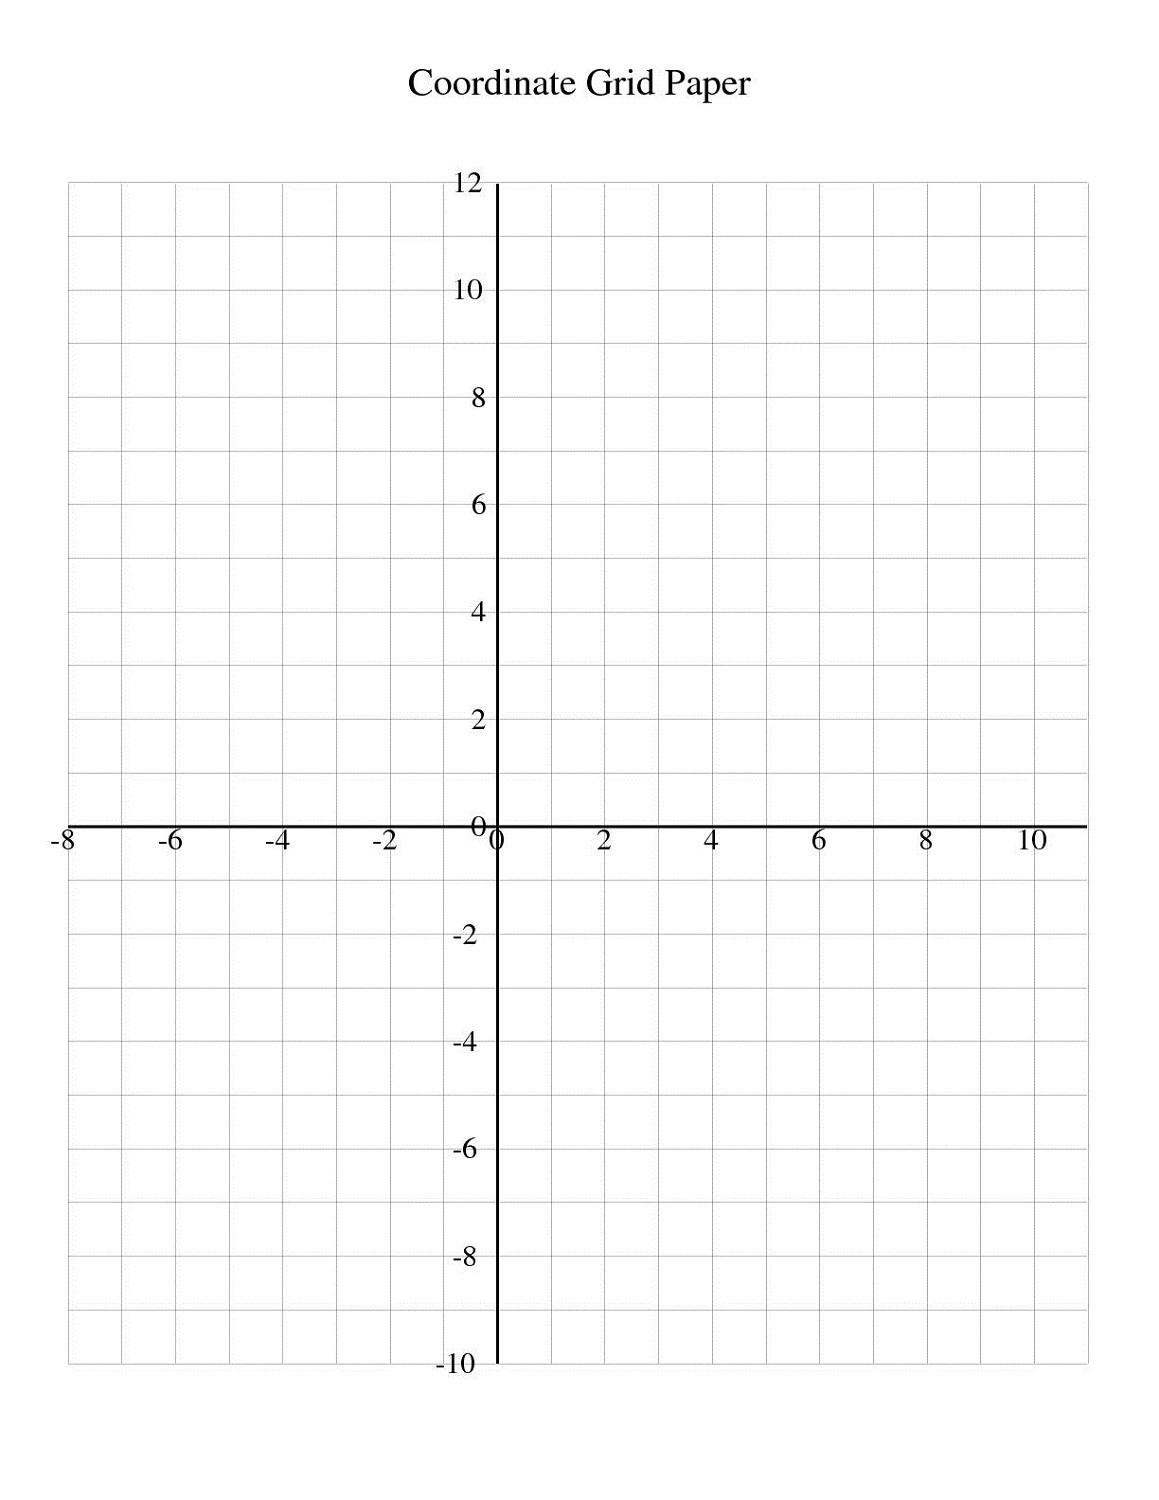 Ordered Pairs Worksheet 5th Grade Math Coordinates Worksheet & Coordinate Plane Worksheets